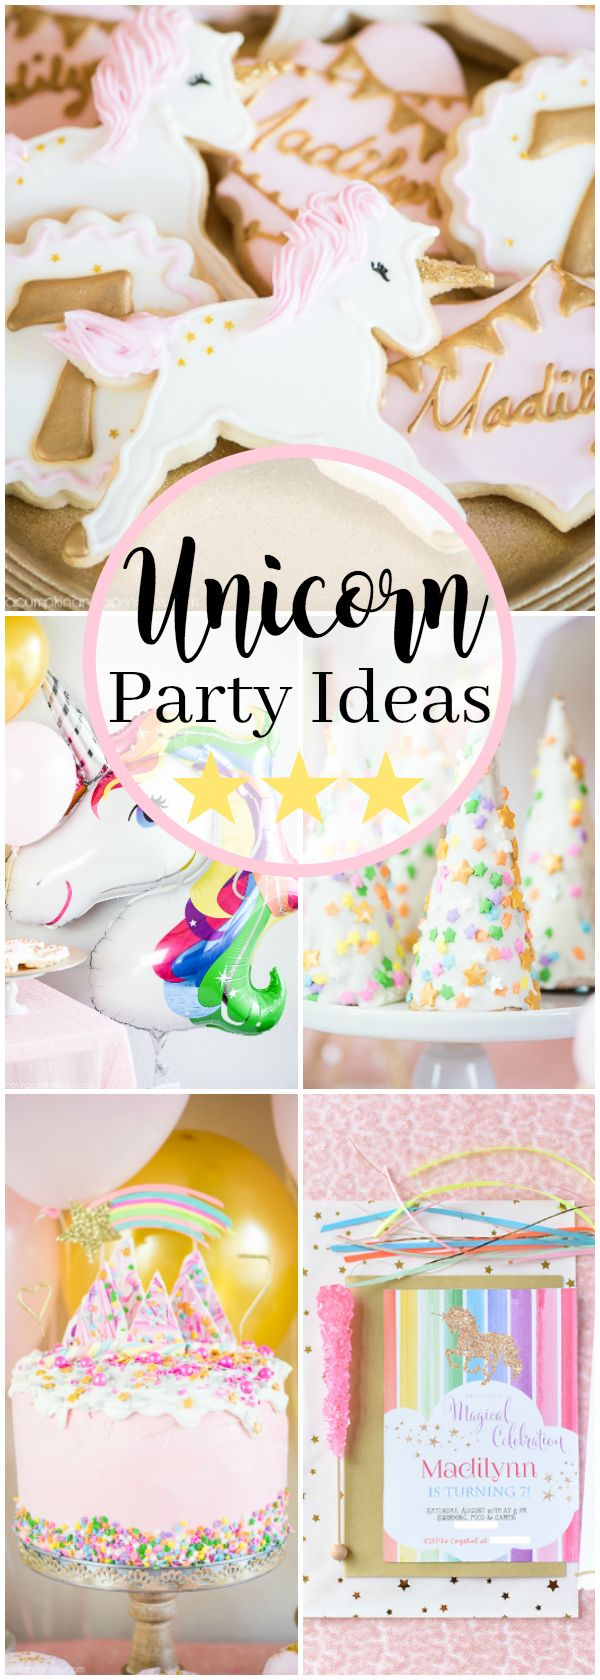 25 best ideas about rainbow theme on pinterest rainbow party themes - Shimmery Pink And Gold Unicorn Birthday Party Unicorn Party Ideas Food And Decorations